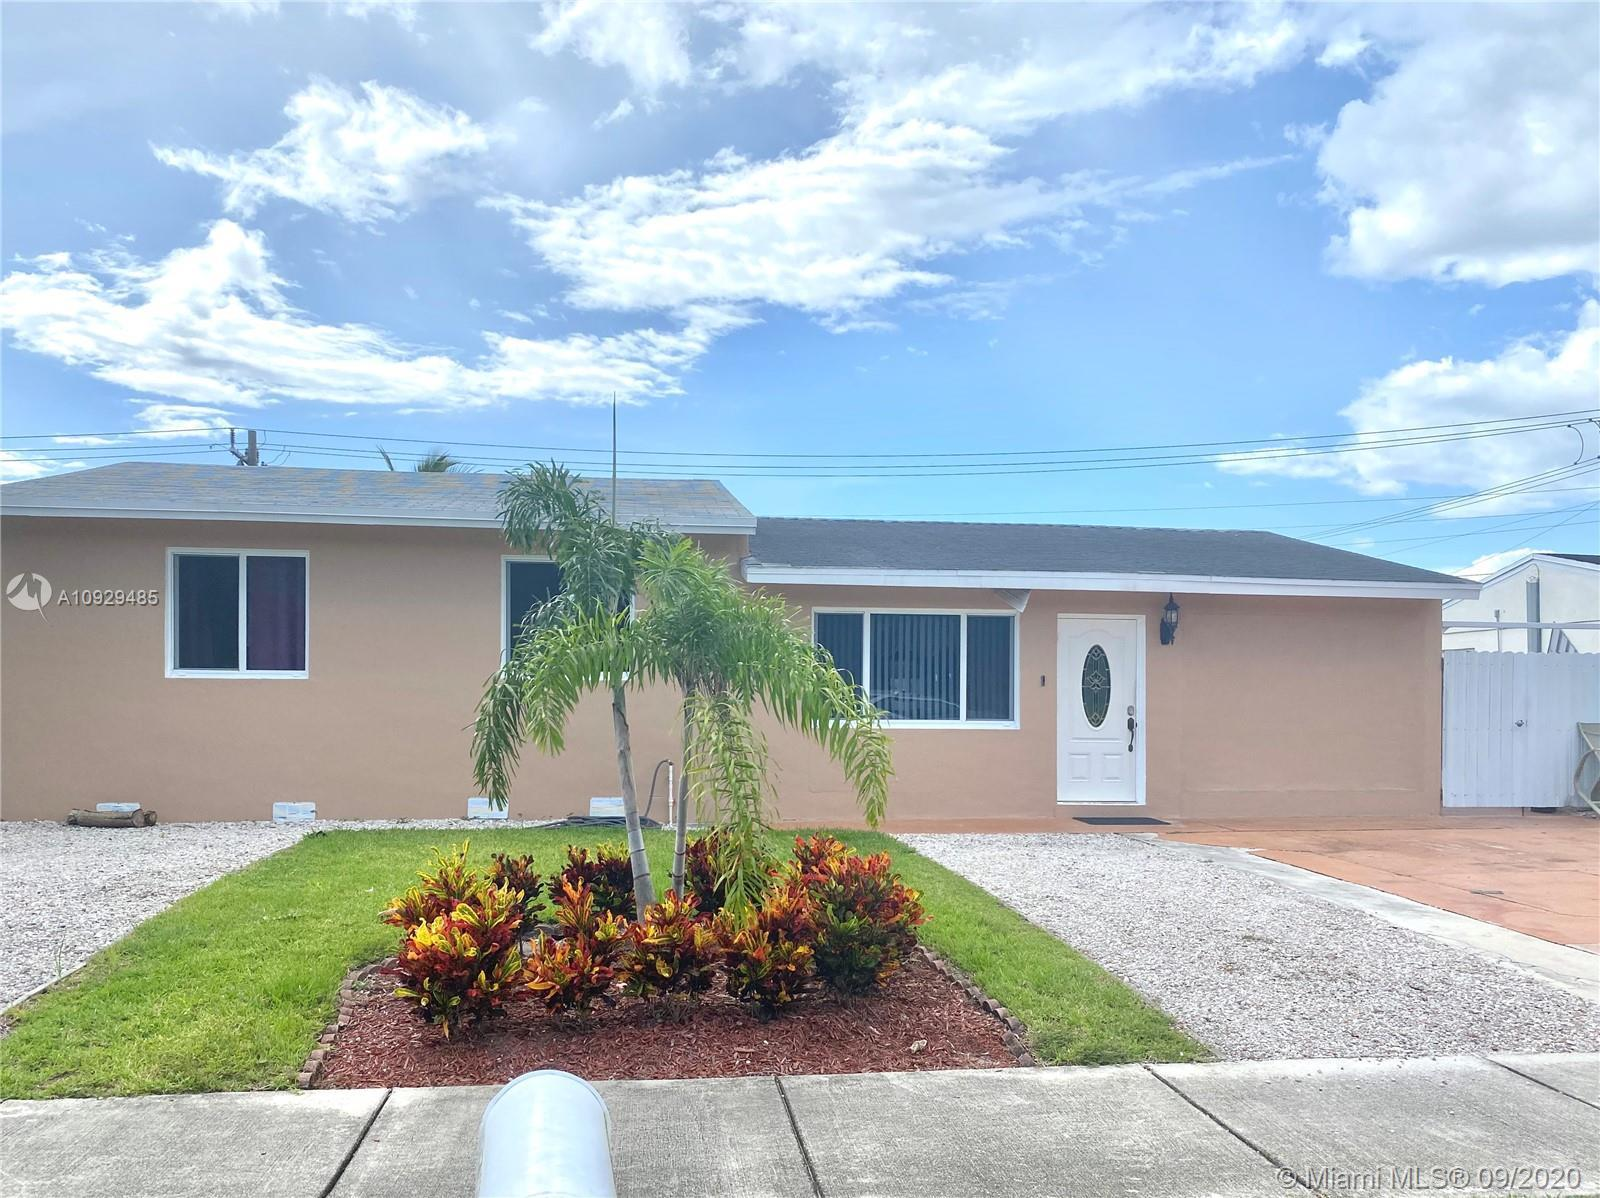 AMAZING 3 BEDROO/2 BATH. SINGLE FAMILY IN A STELAR LOCATION OF FORT LAUDERDALE, FIRST FLOOR ENTRY,